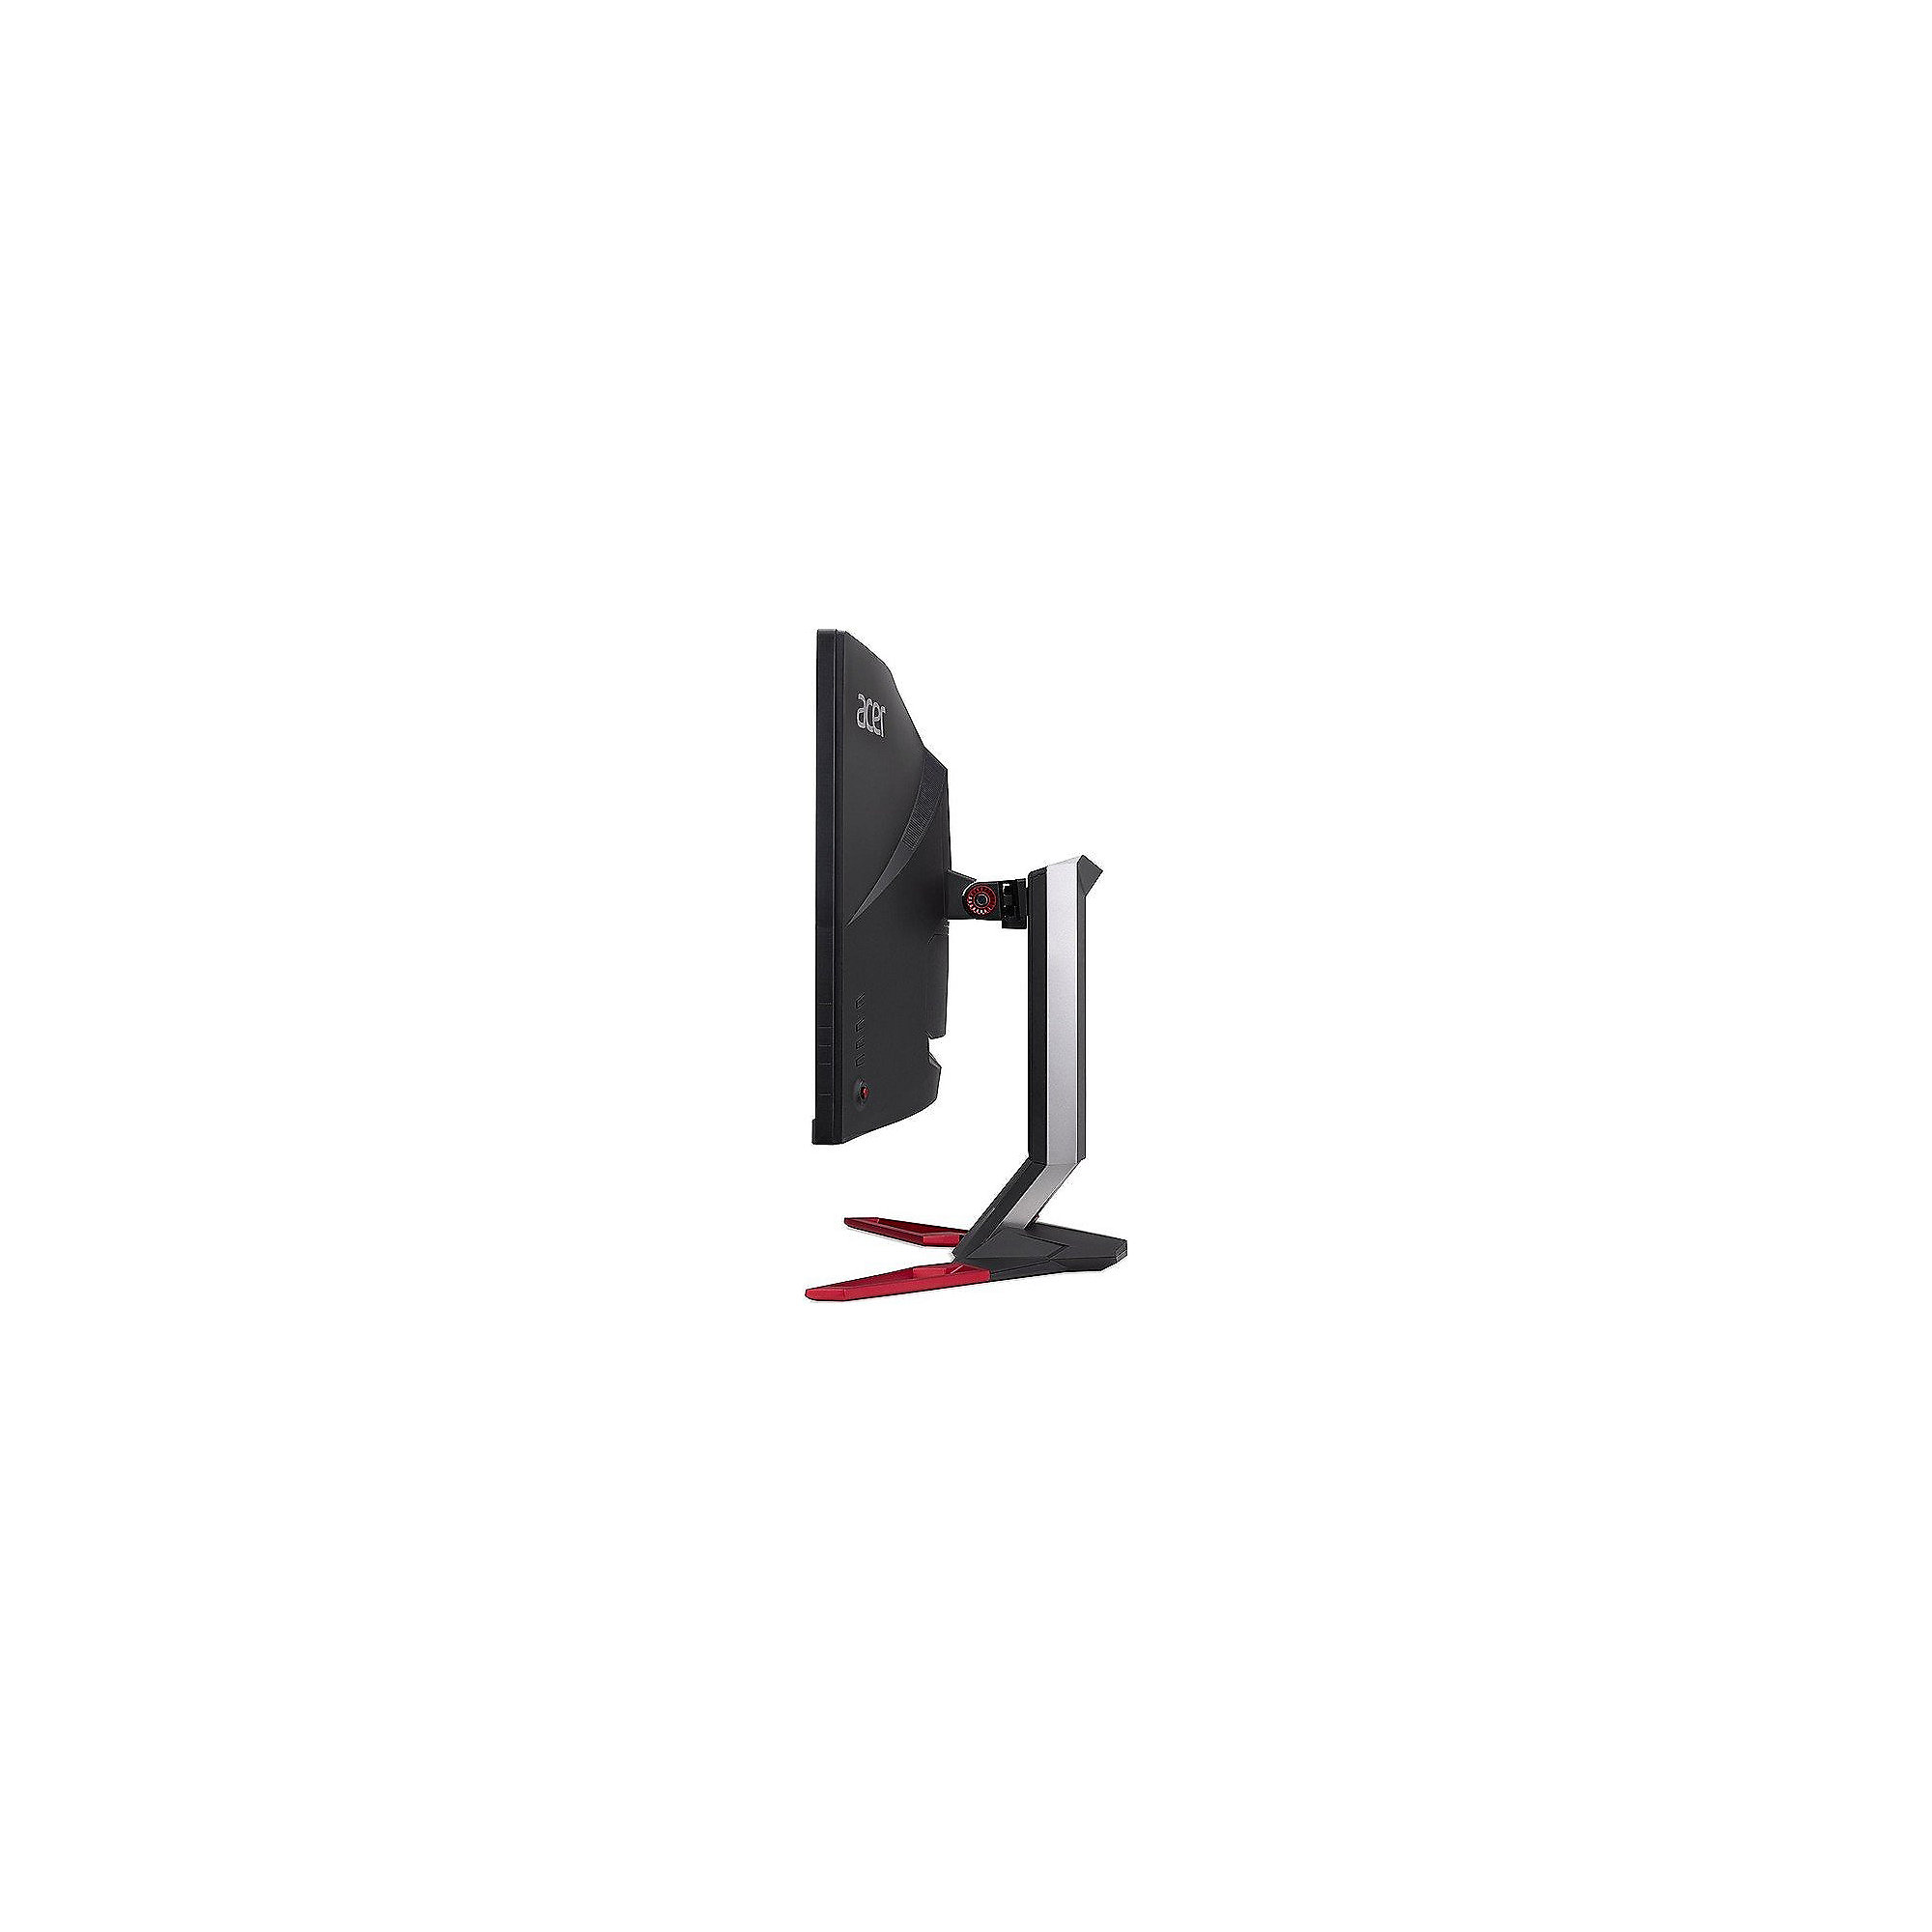 "Predator Z321Qbmiphzx 80cm(31,5"") 120Hz Curved Gaming Monitior HDMI/DP/USB LS"